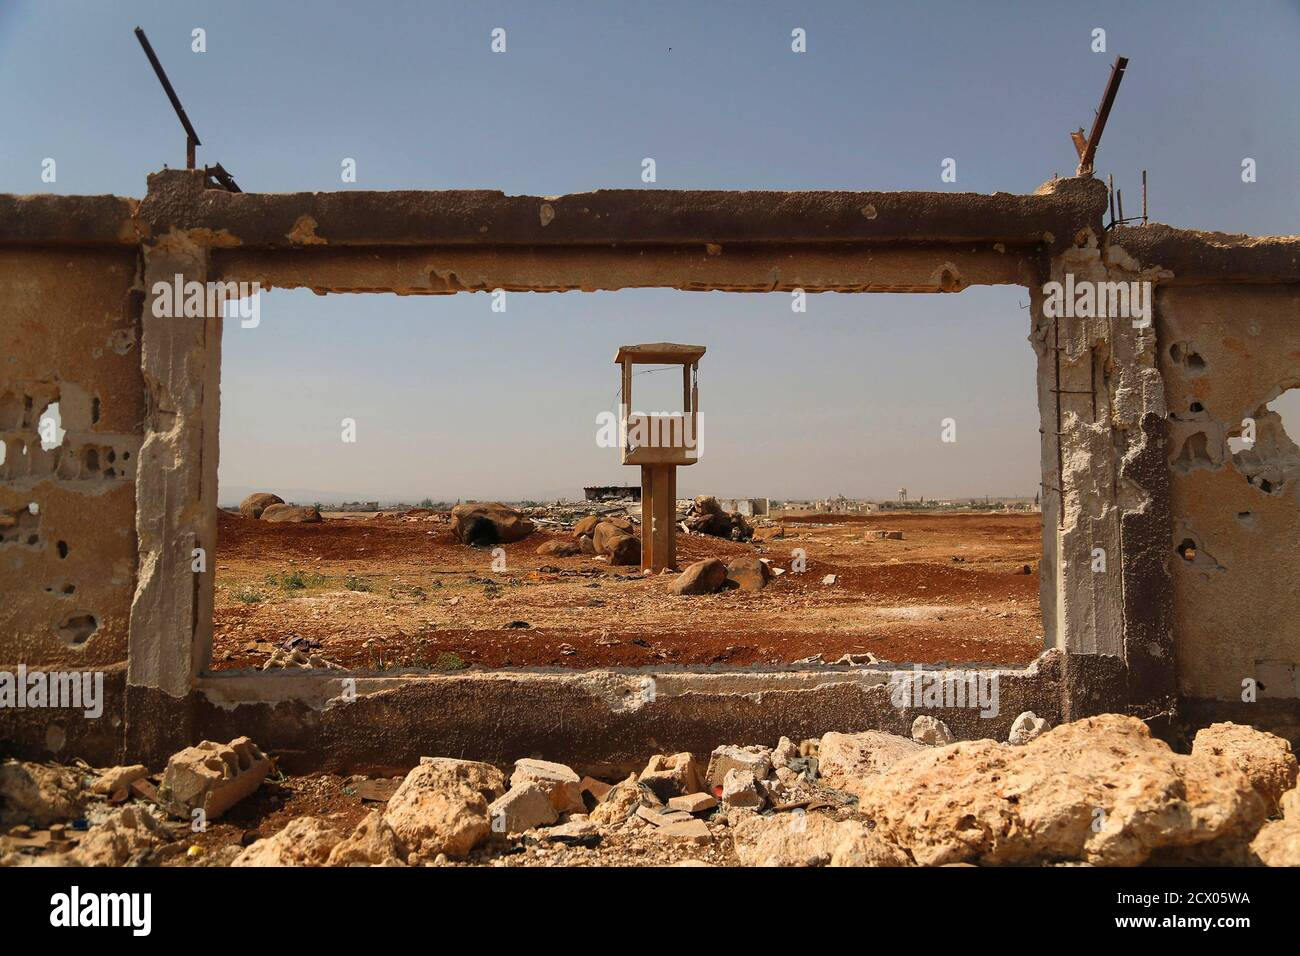 A damaged wall, part of the Menagh airport that is controlled by rebels, is seen in the Aleppo Countryside May 31, 2014. REUTERS/Hamid Khatib (SYRIA - Tags: POLITICS CIVIL UNREST) Banque D'Images